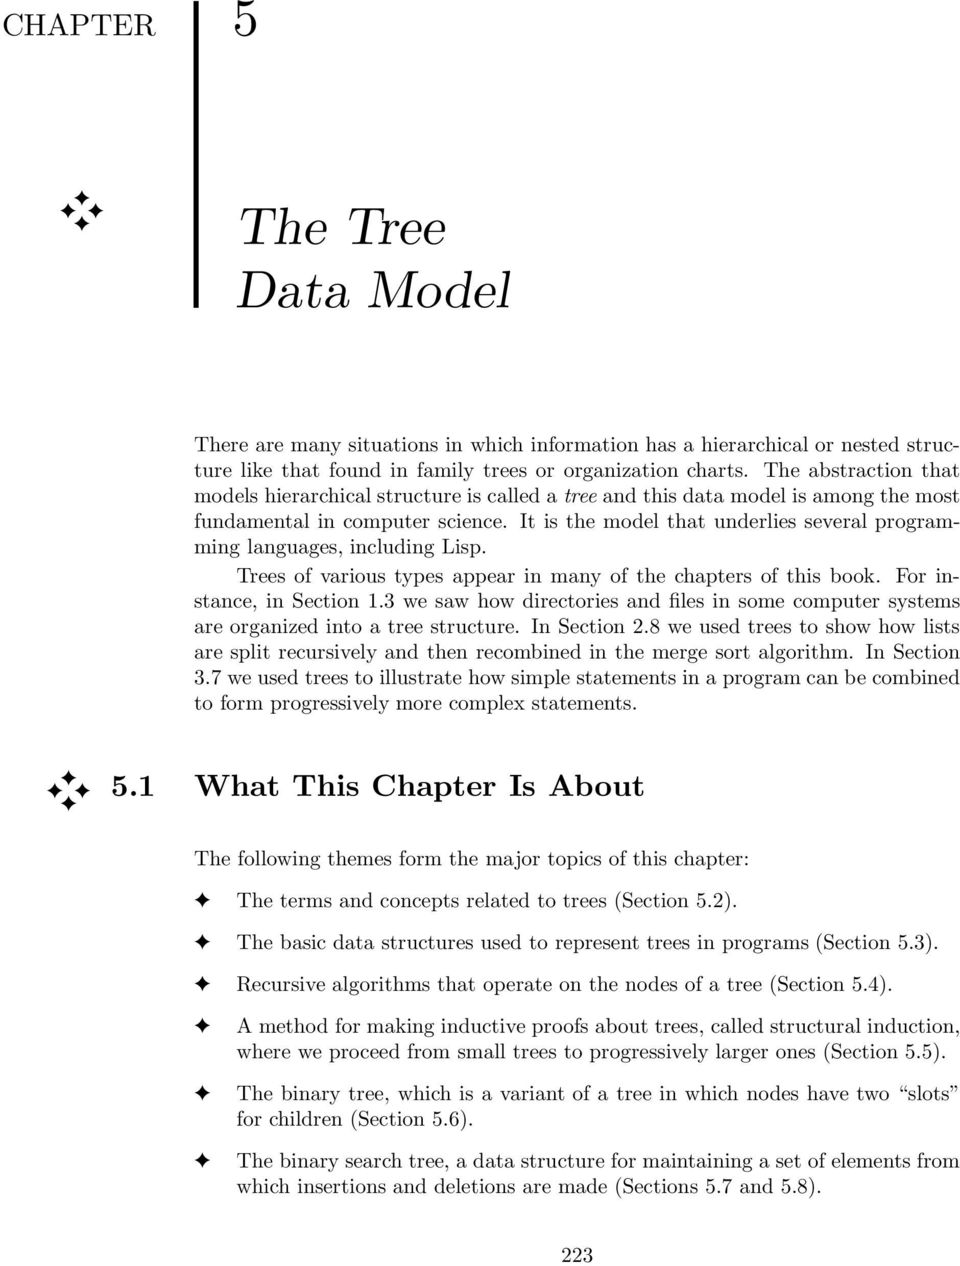 It is the model that underlies several programming languages, including Lisp. Trees of various types appear in many of the chapters of this book. For instance, in Section 1.